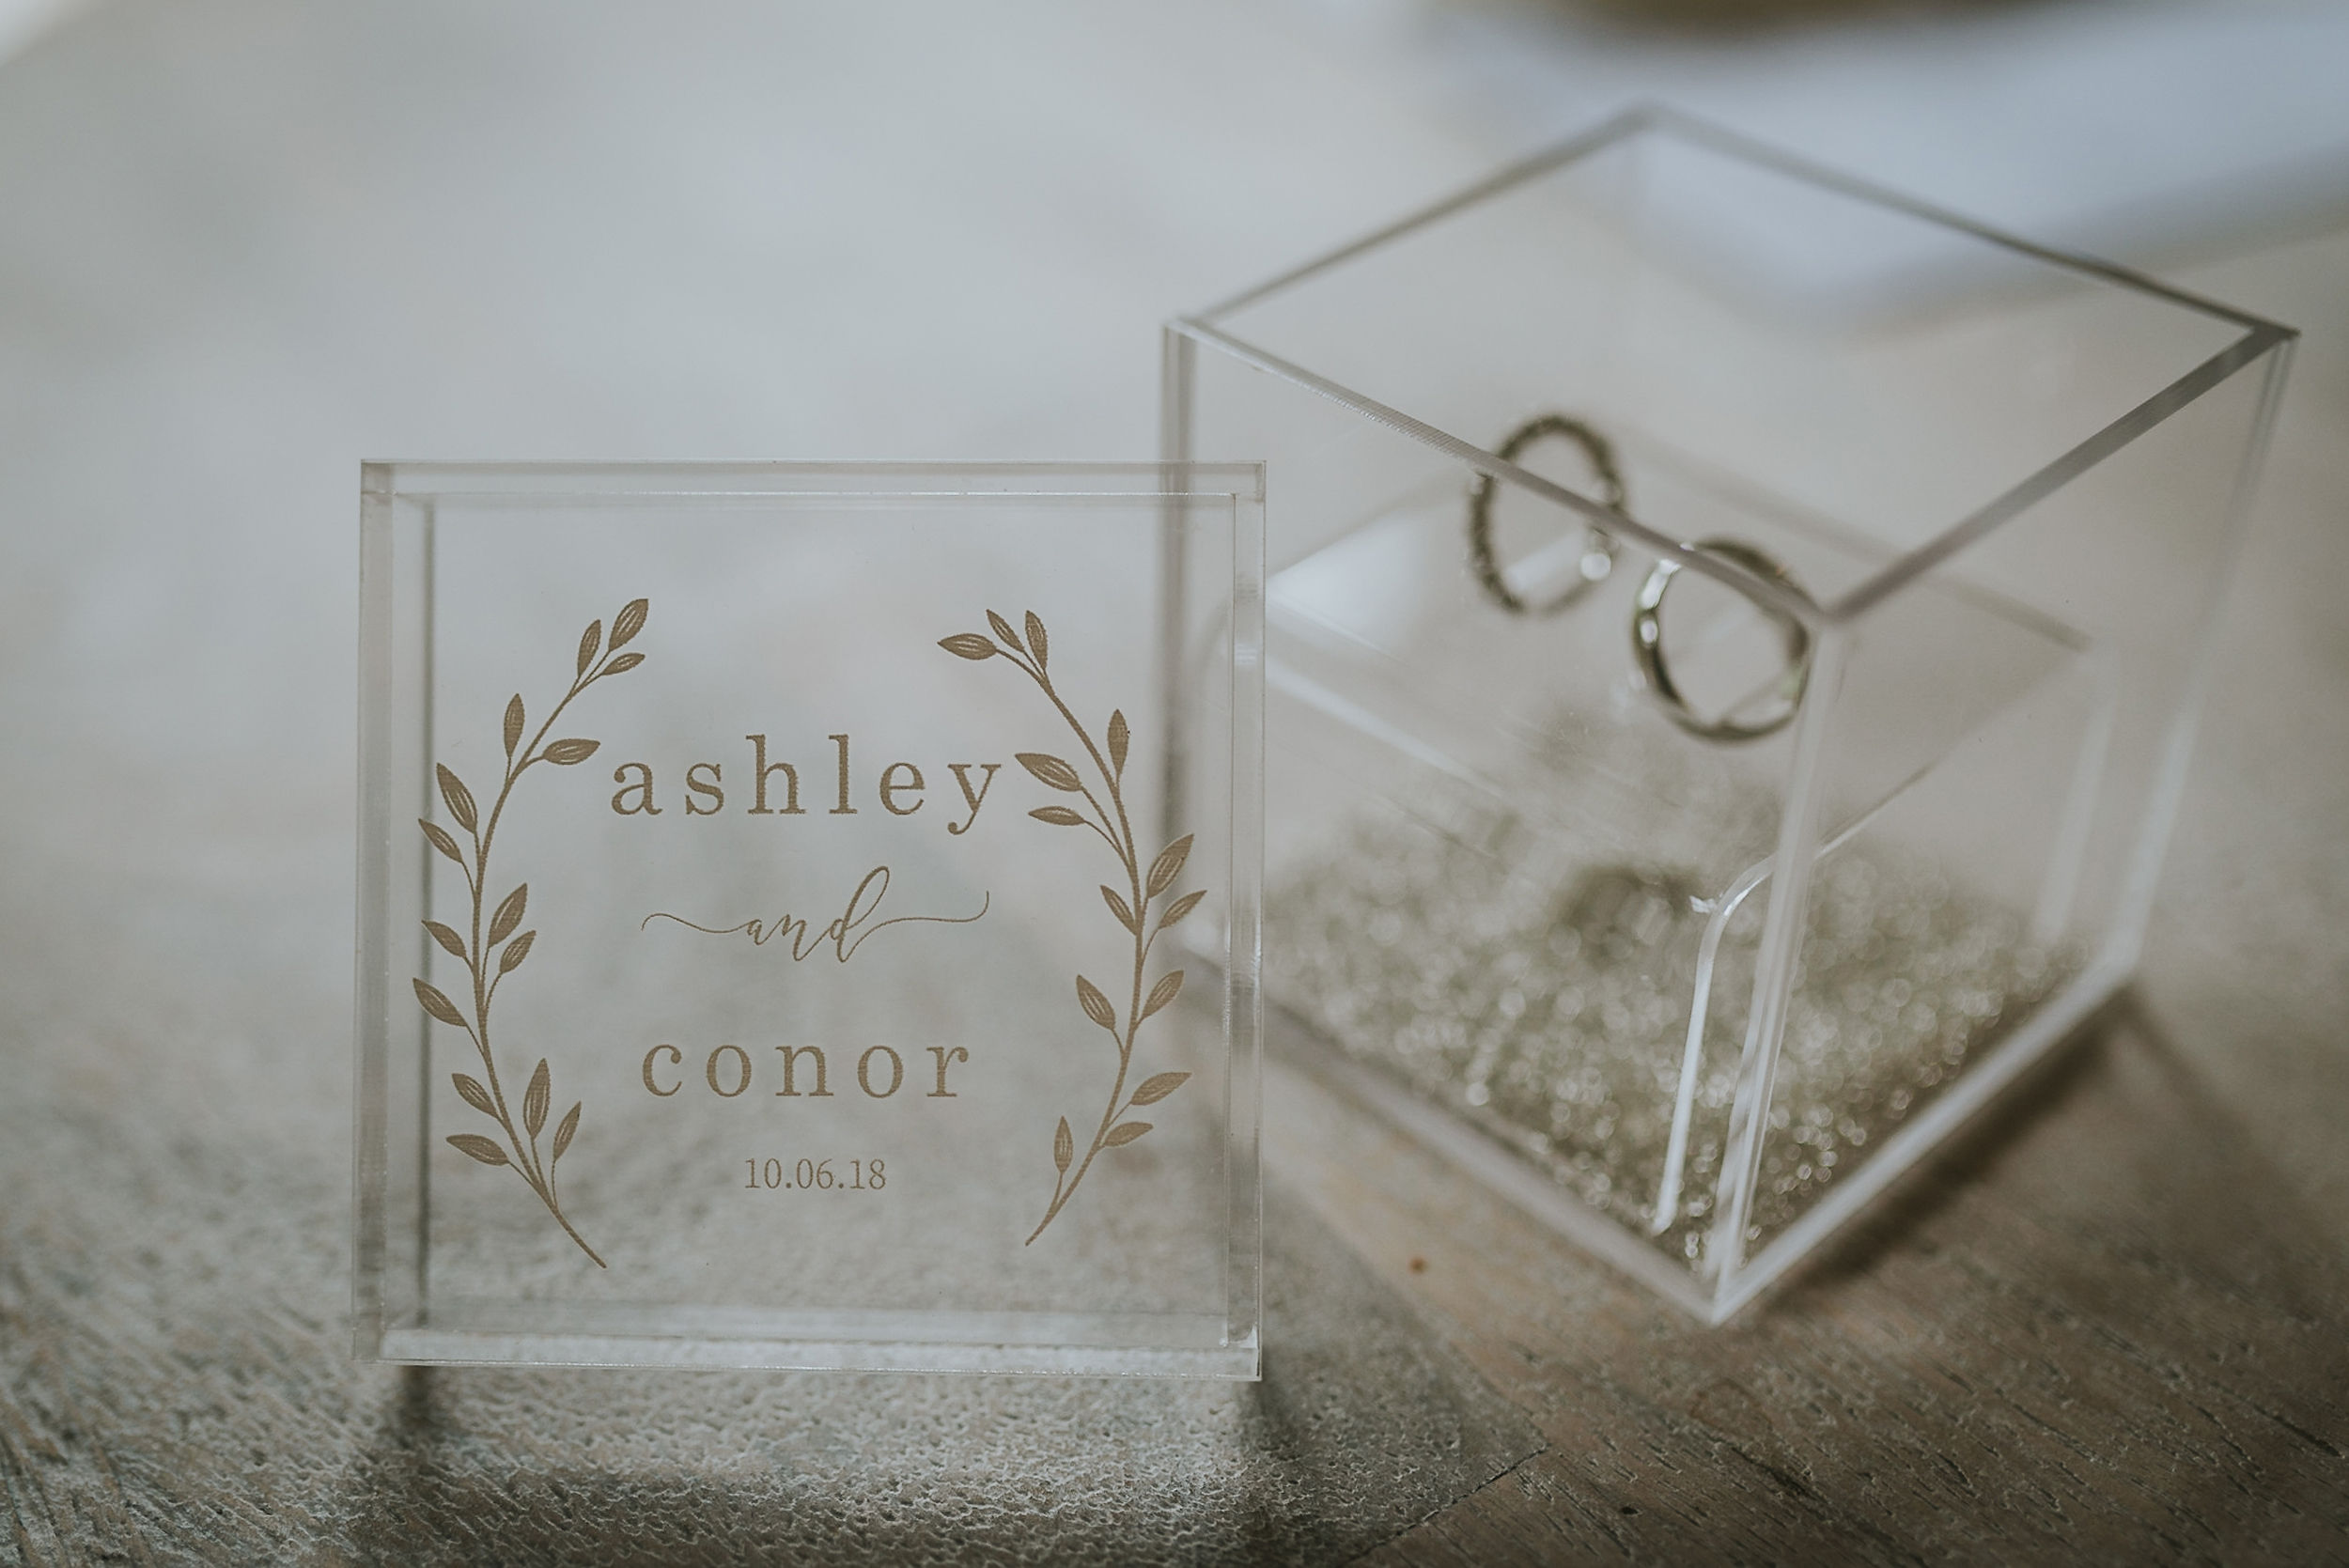 Ashley & Conor - Rockaway River Country Club New Jersey Wedding 011.jpg